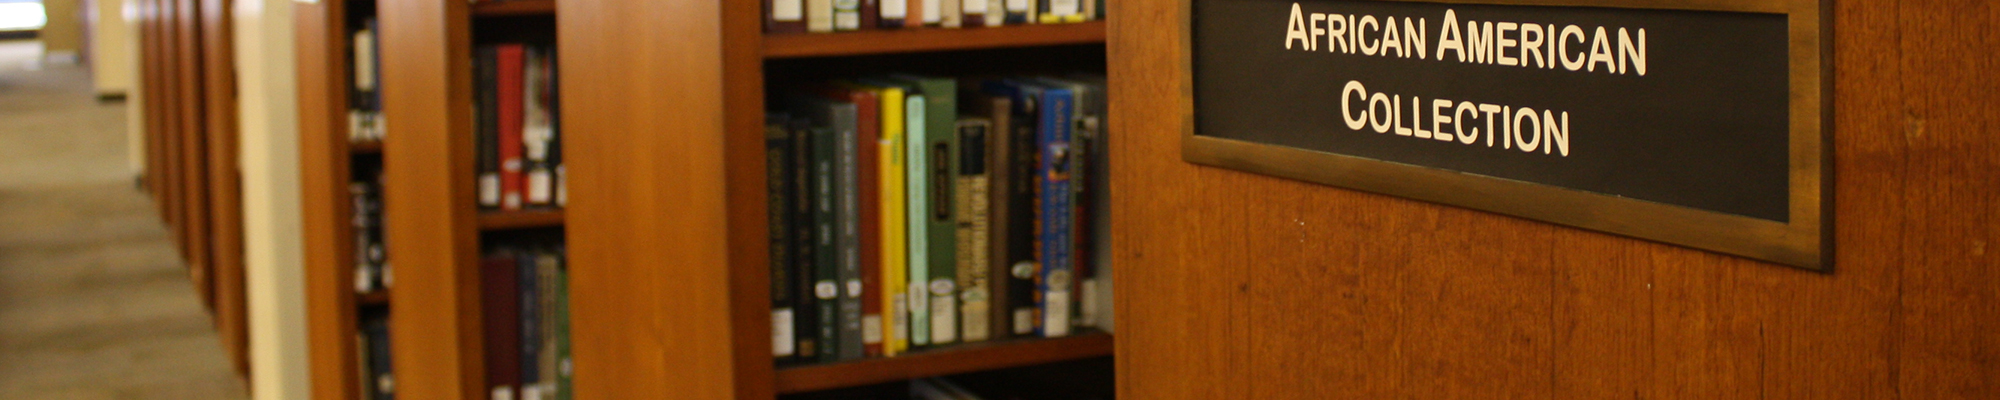 A close-up of the African American Collections sign on the bookshelves in Hillman Library